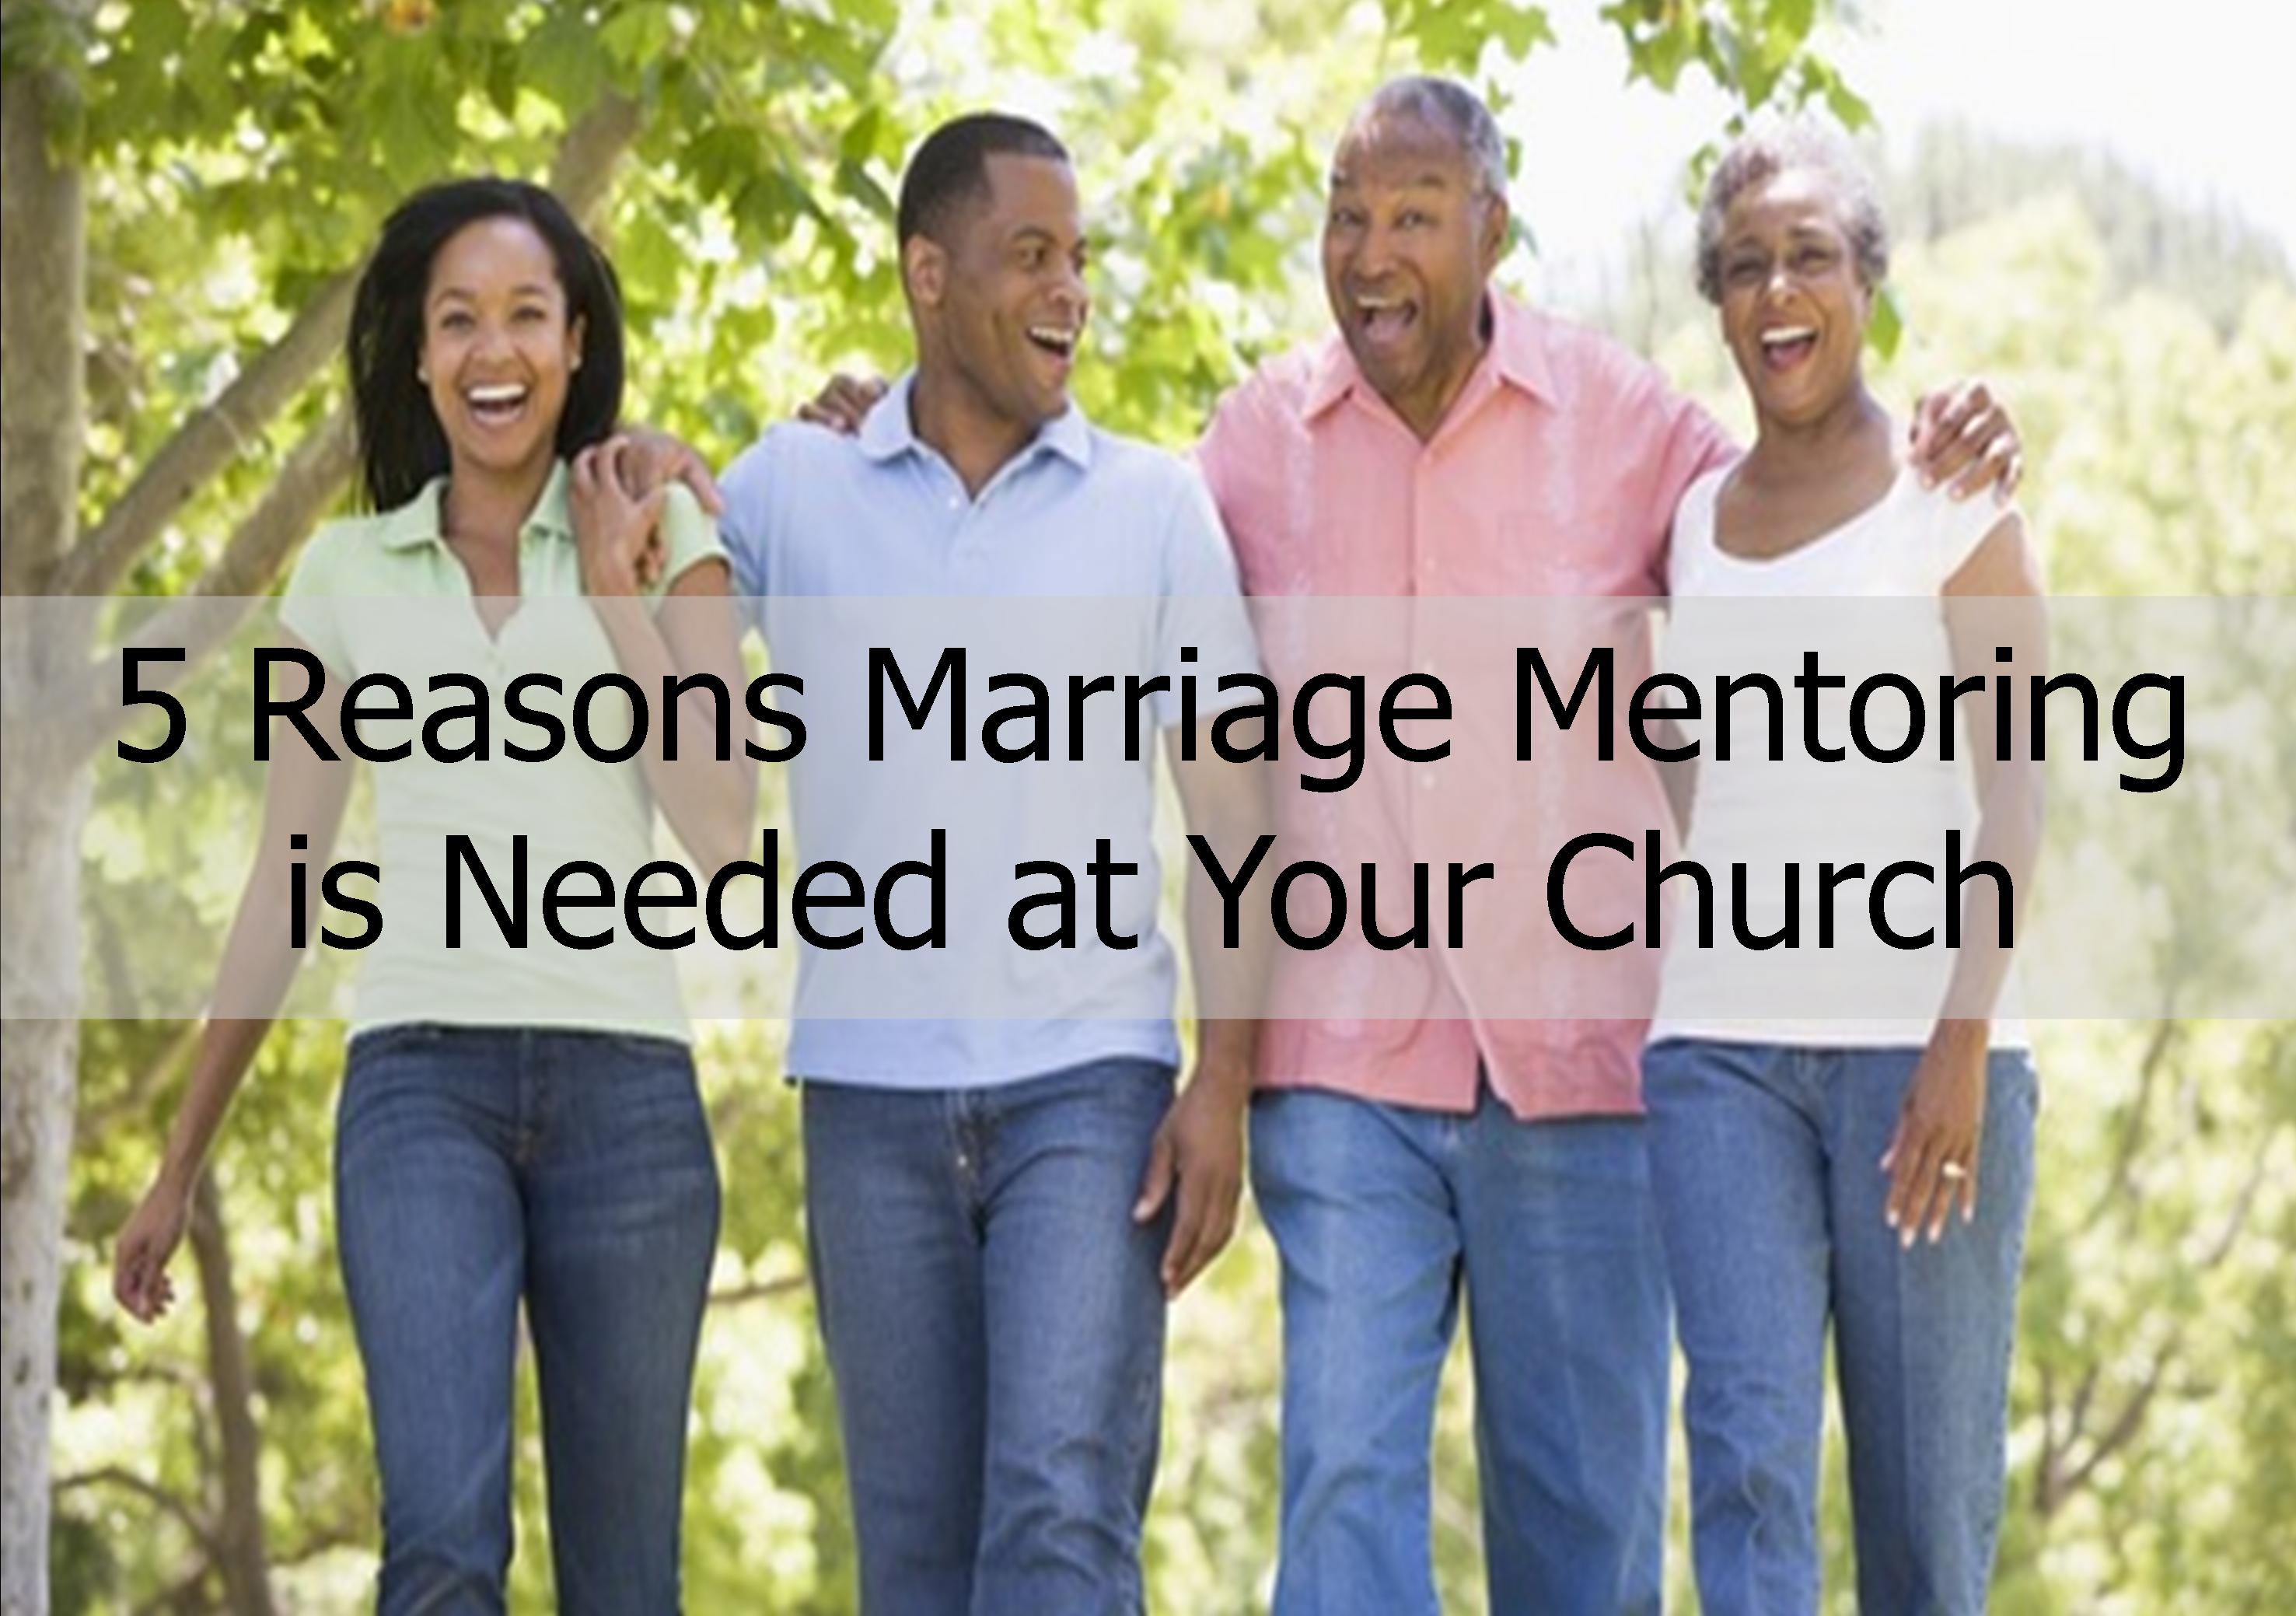 5 reasons marriage mentoring is needed at your church